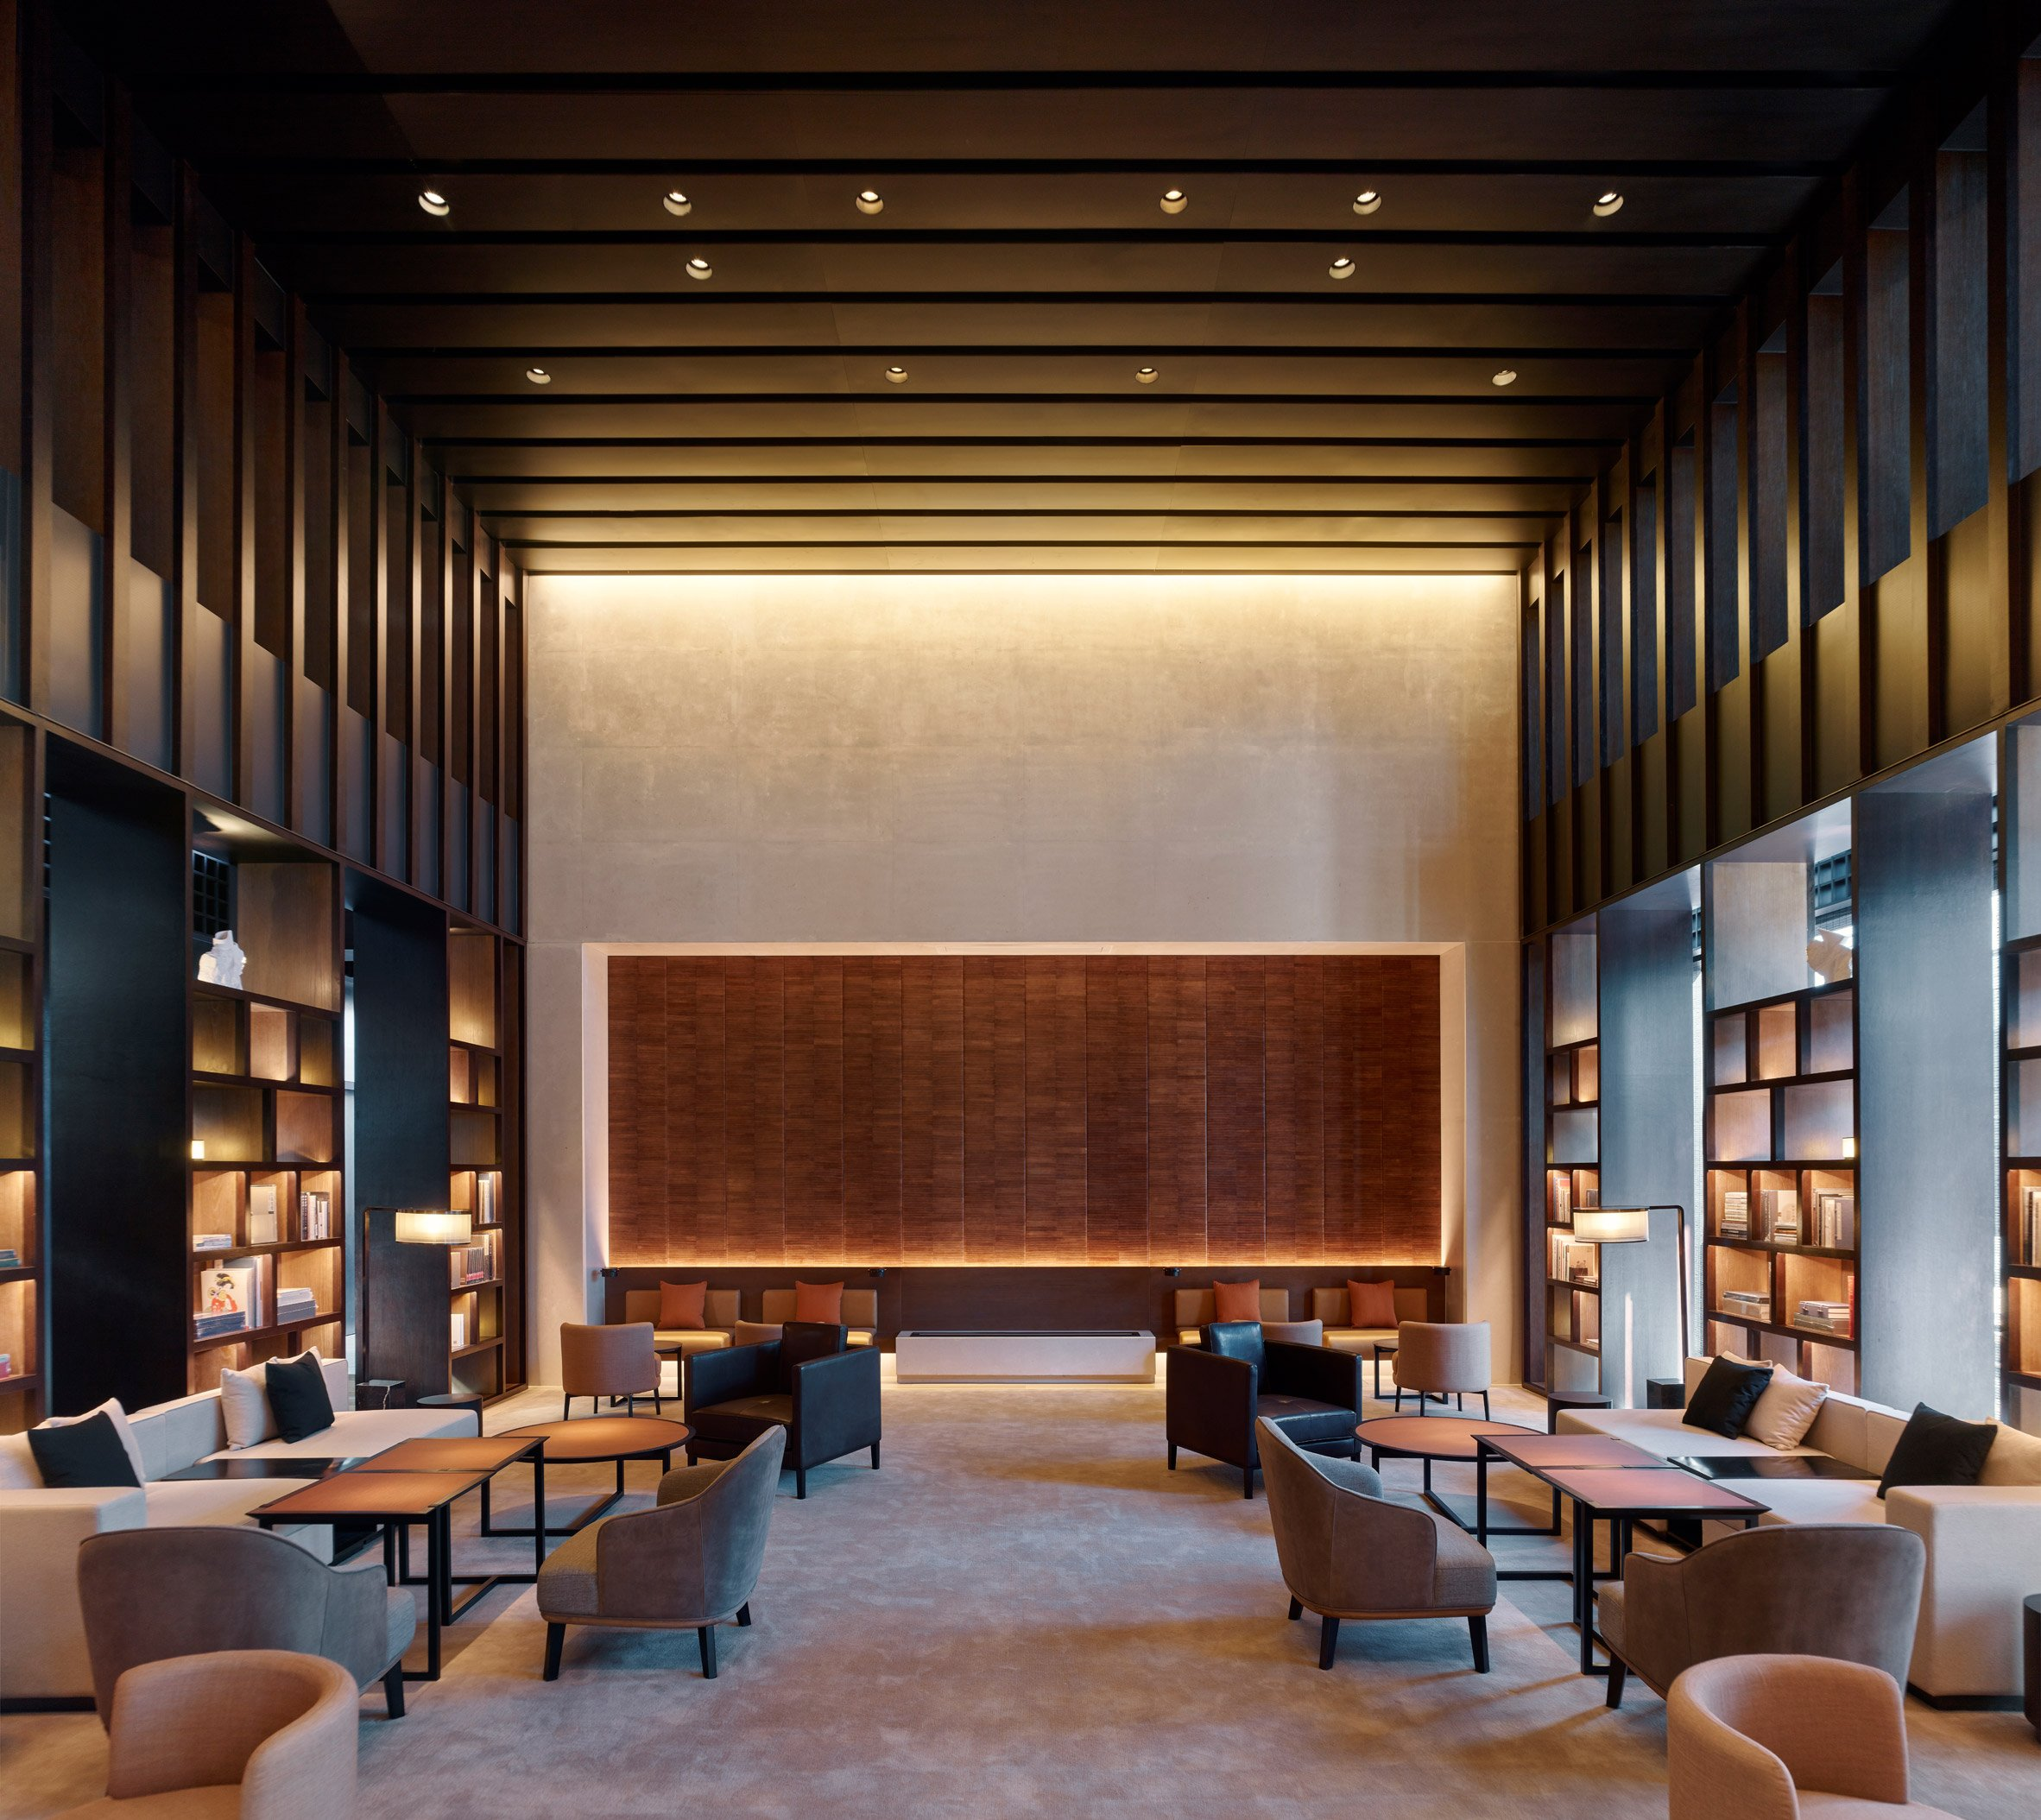 Interiors of Puxuan Hotel and Spa, designed by MQ Studio